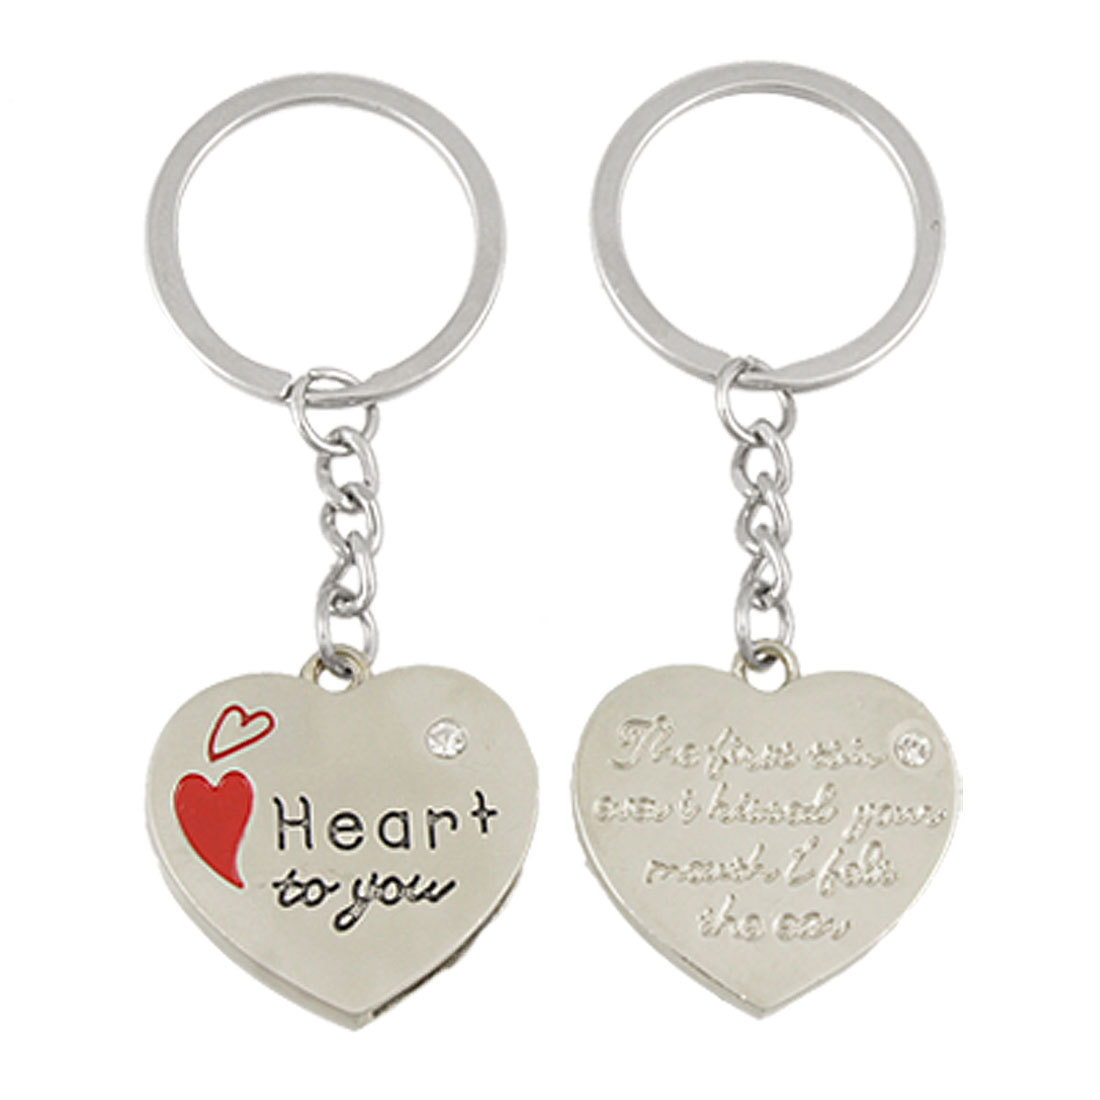 2 Pcs Dual Heart Pendant Couple Alloy Key Chain Keychain